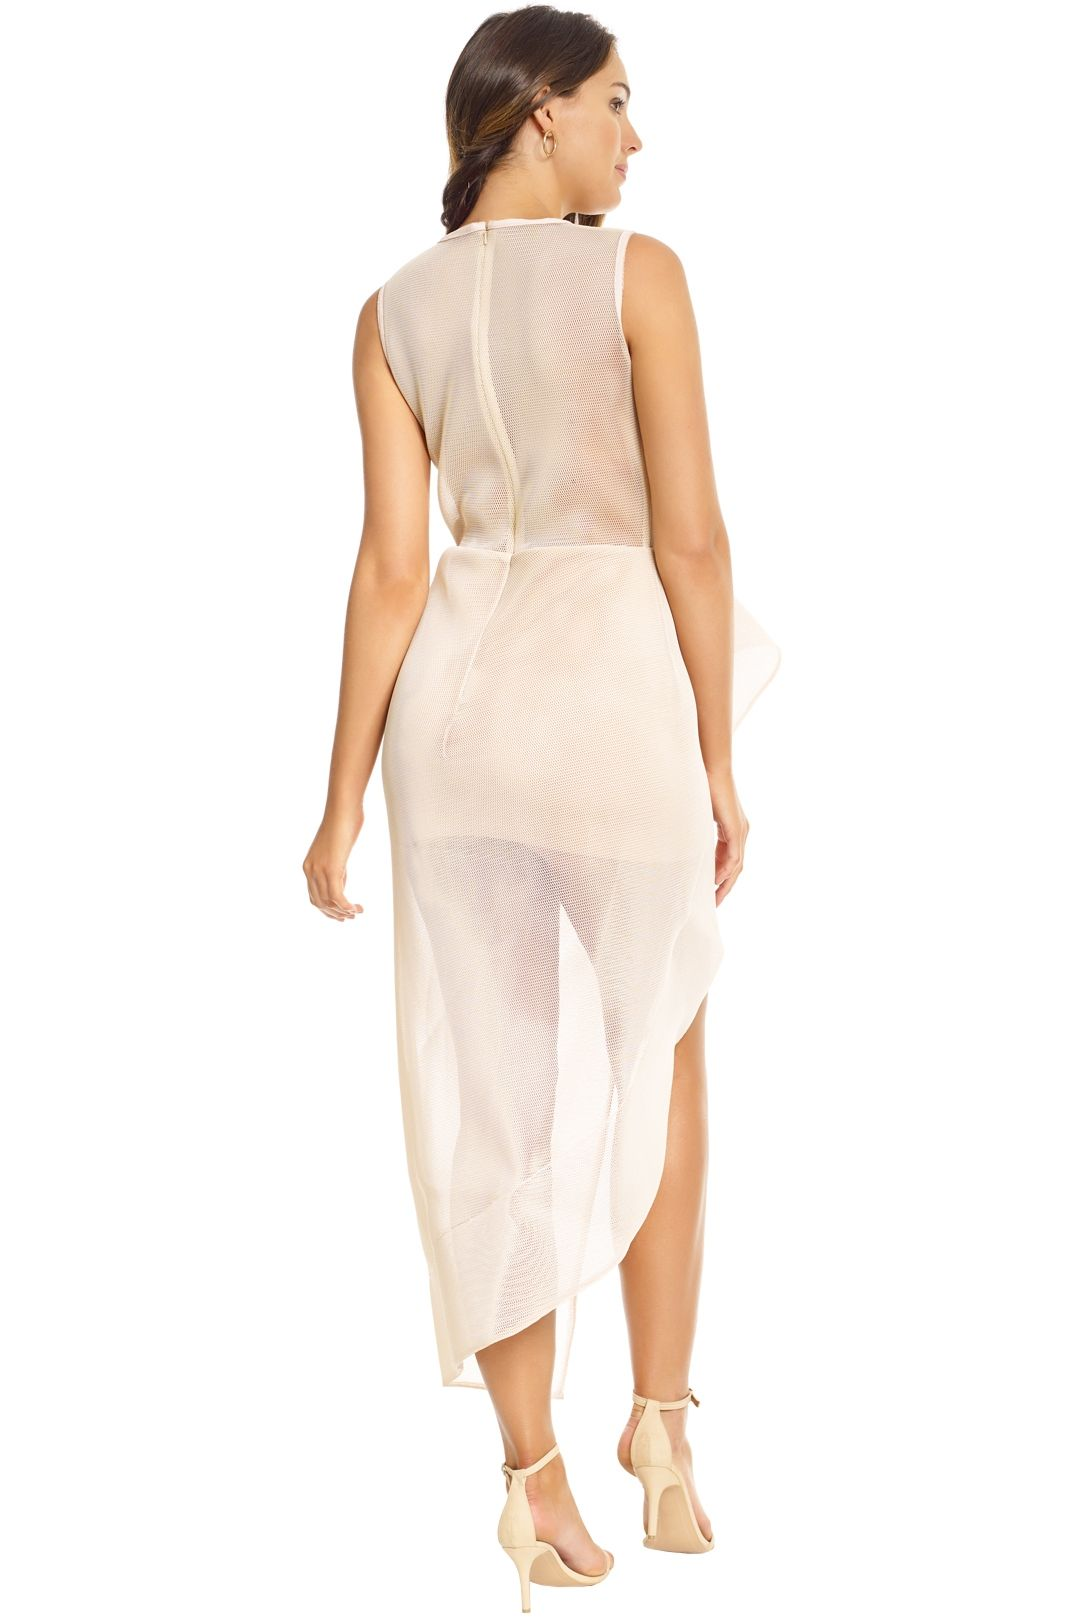 Lexi - Prana Dress - Champagne - Back